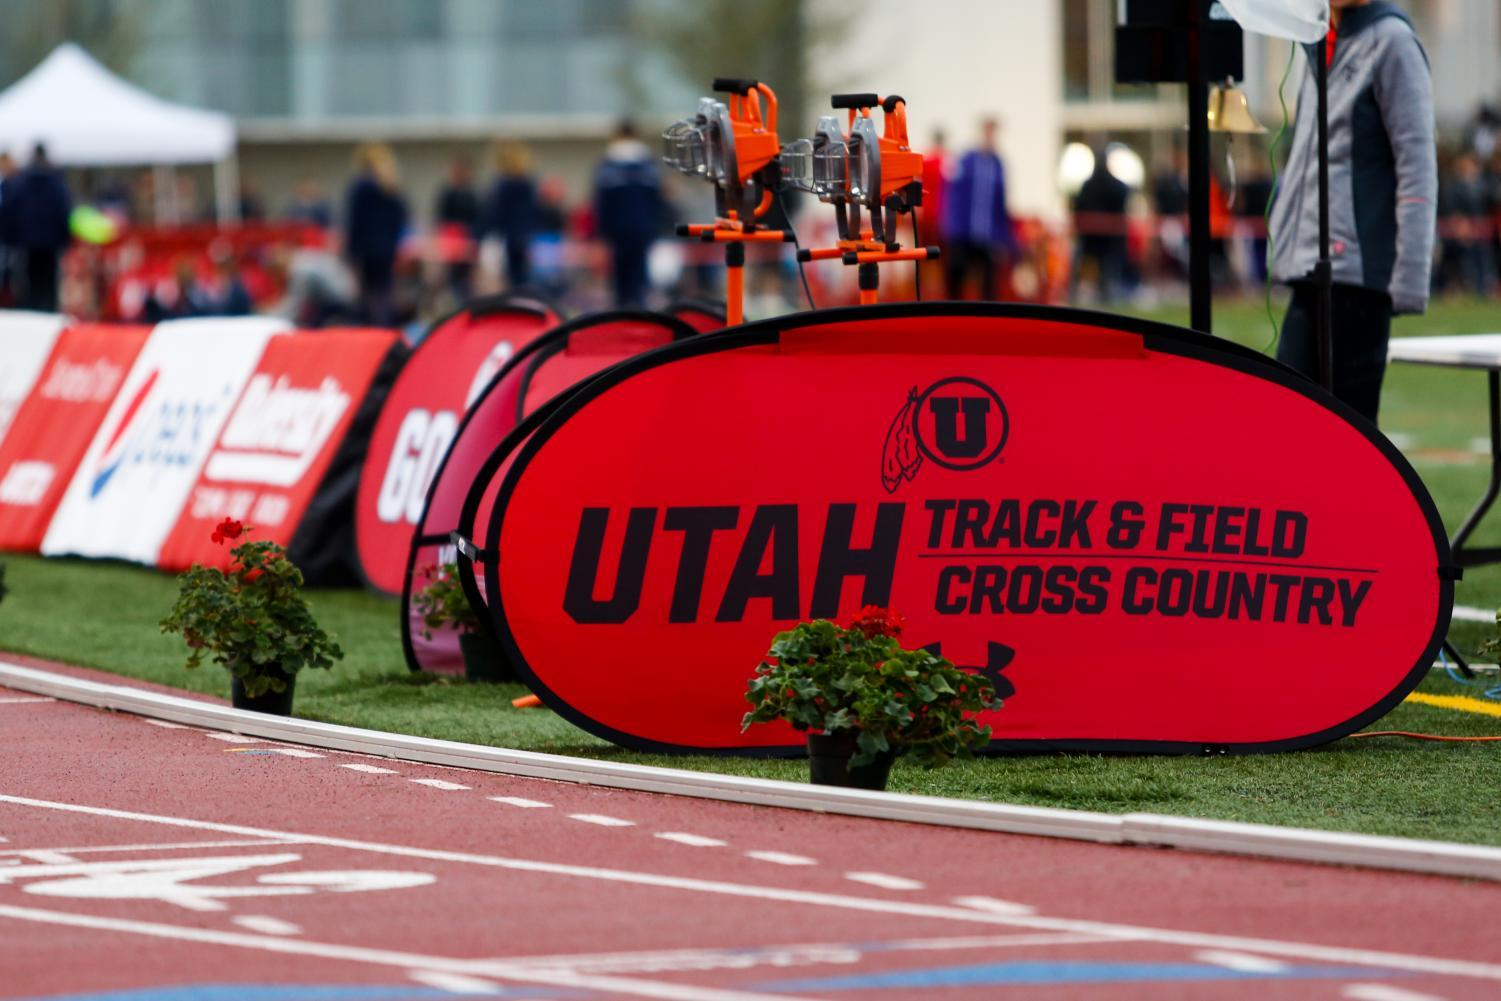 The University of Utah and Weber State host the Utah Spring Classic at the McCarthey Family Track and Field Complex in Salt Lake City, UT on Friday April 06, 2018. (Photo by Curtis Lin/ Daily Utah Chronicle)